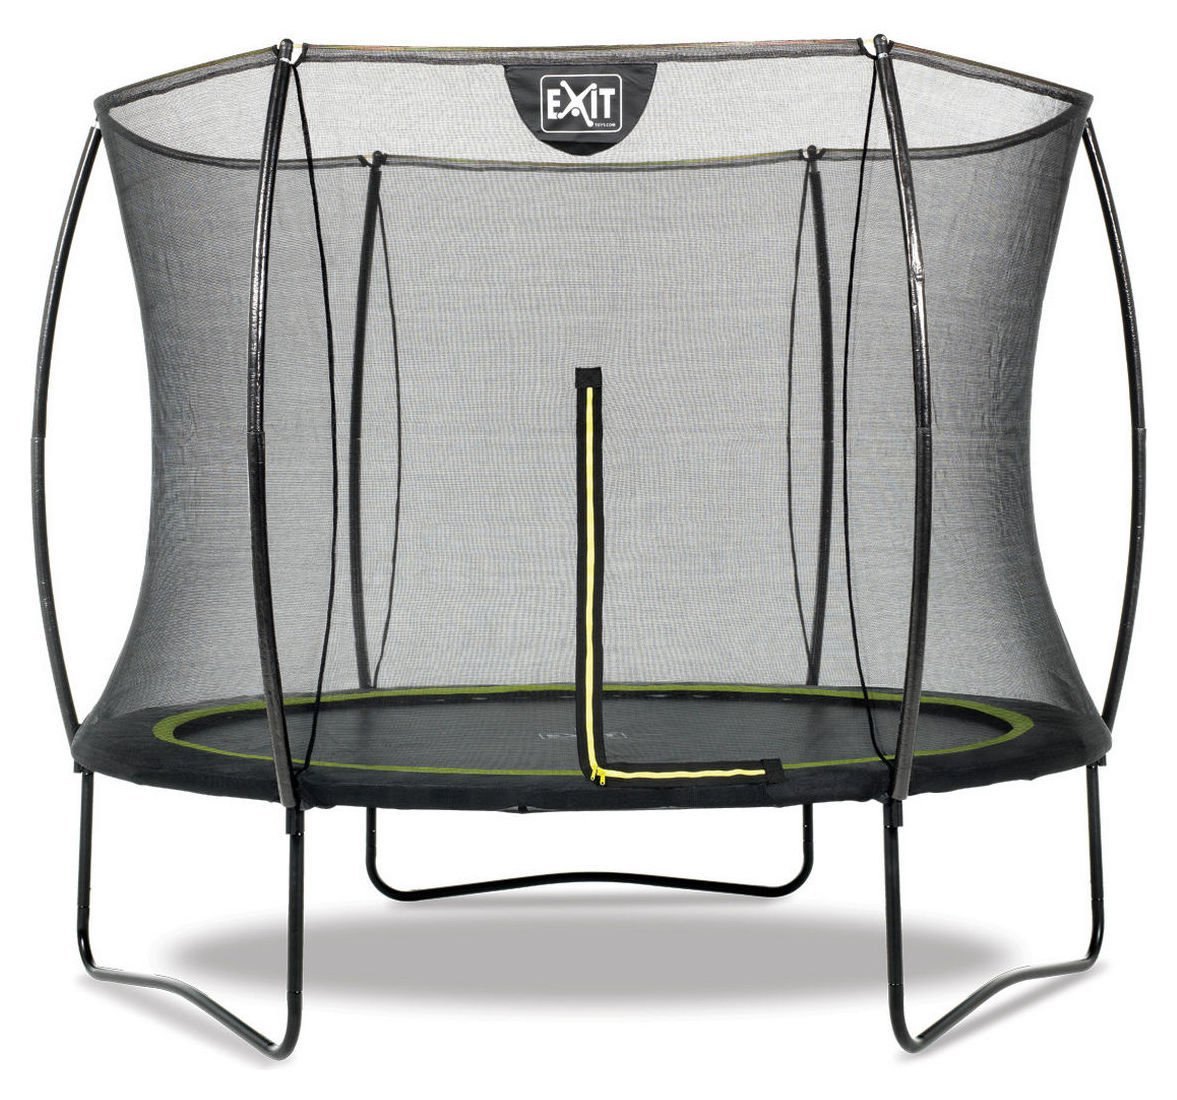 Image of EXIT - 10ft Black Edition - Trampoline